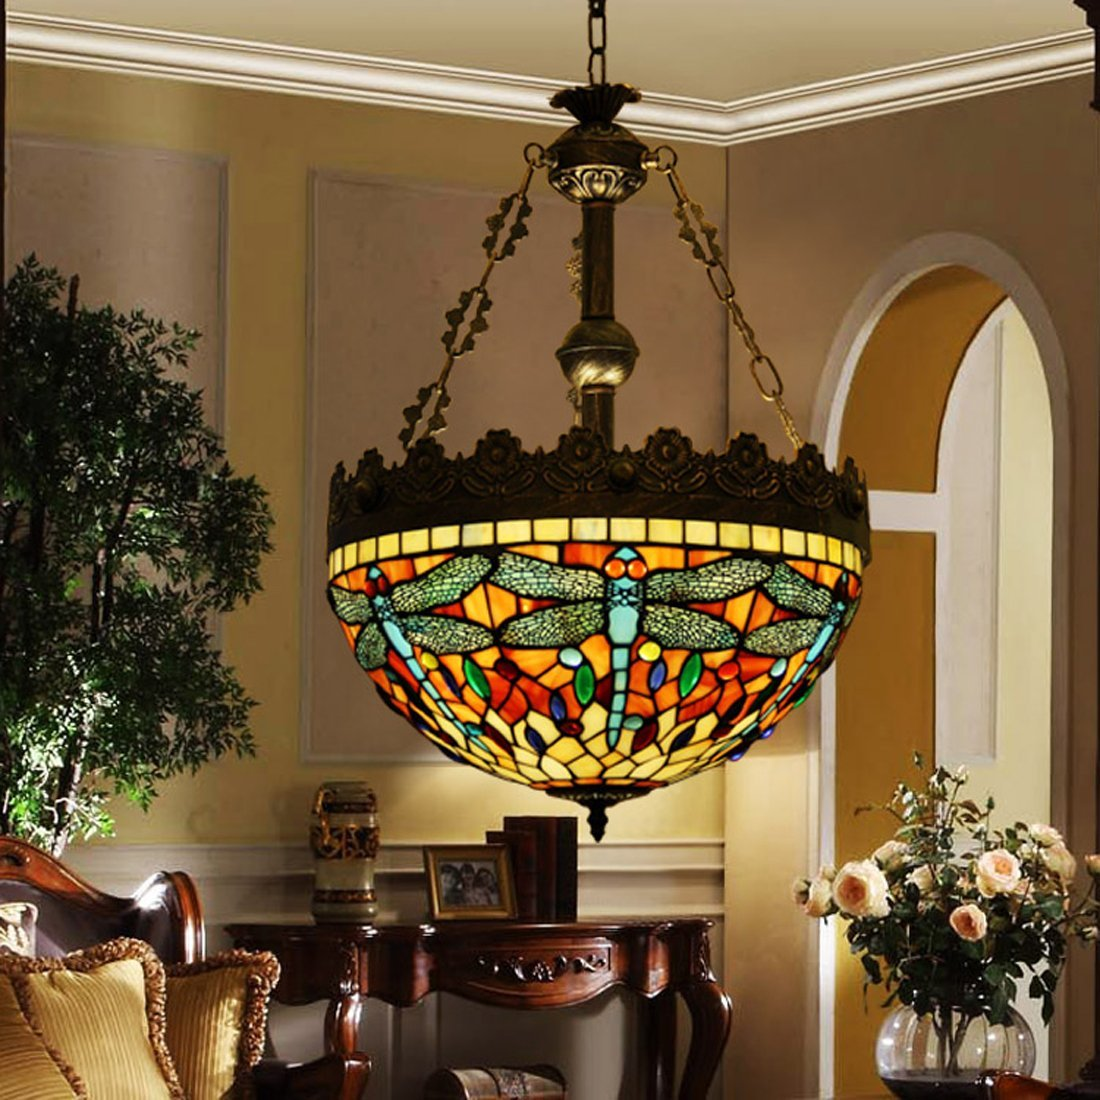 Qvc Tiffany Lamps Uk by 100 Tiffany Style Lamps Qvc Uk Best 25 Stained  Glass Floor  100    Qvc Tiffany Lamps Uk     100 Qvc Outdoor Lighting Pre Lit 6  . Tiffany Style Lamps Qvc Uk. Home Design Ideas